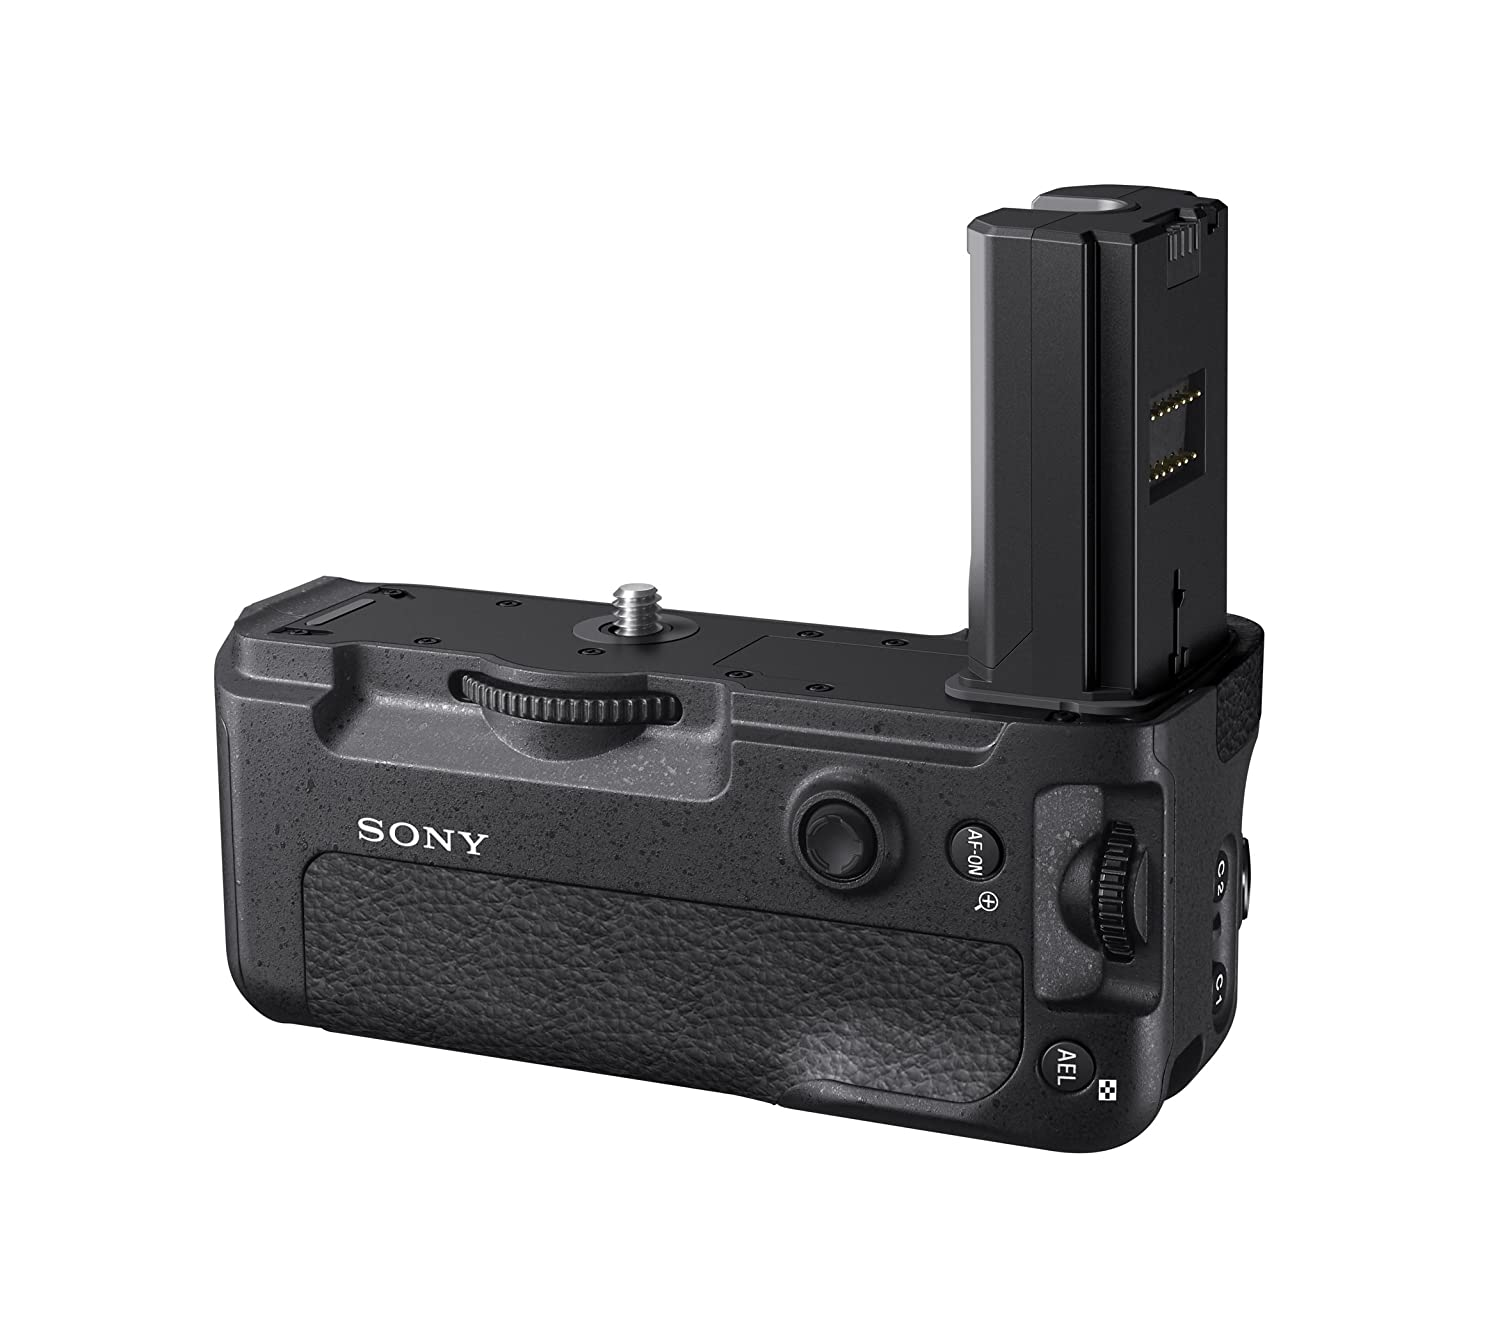 SONY α9,a9,評価,ブログ